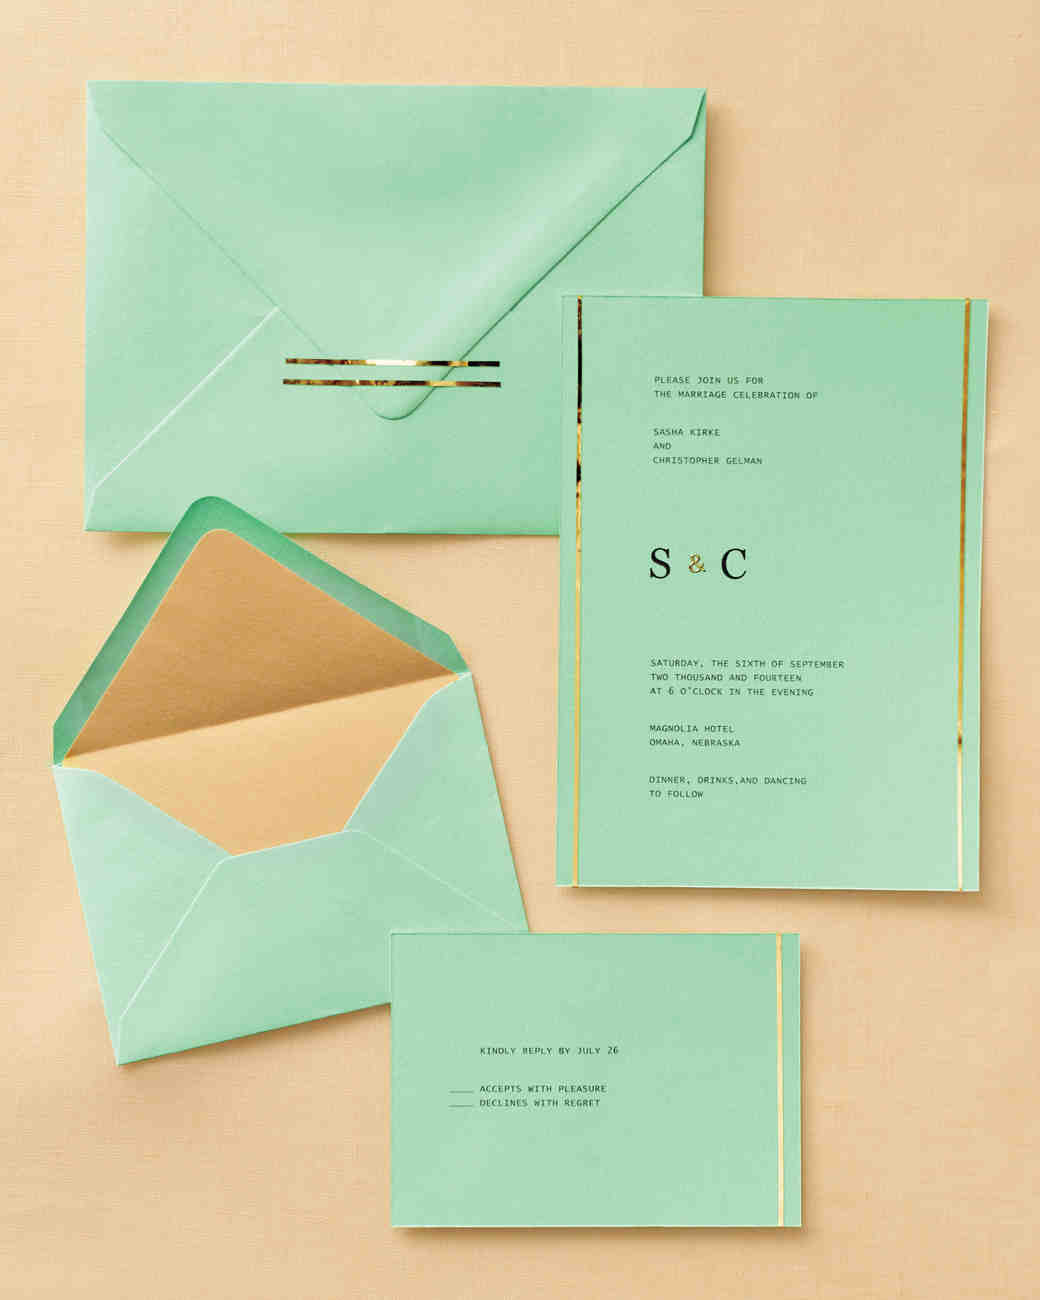 Diy Wedding Invitations With Photo Easy Ways To Upgrade Your Wedding Invitations Martha Stewart